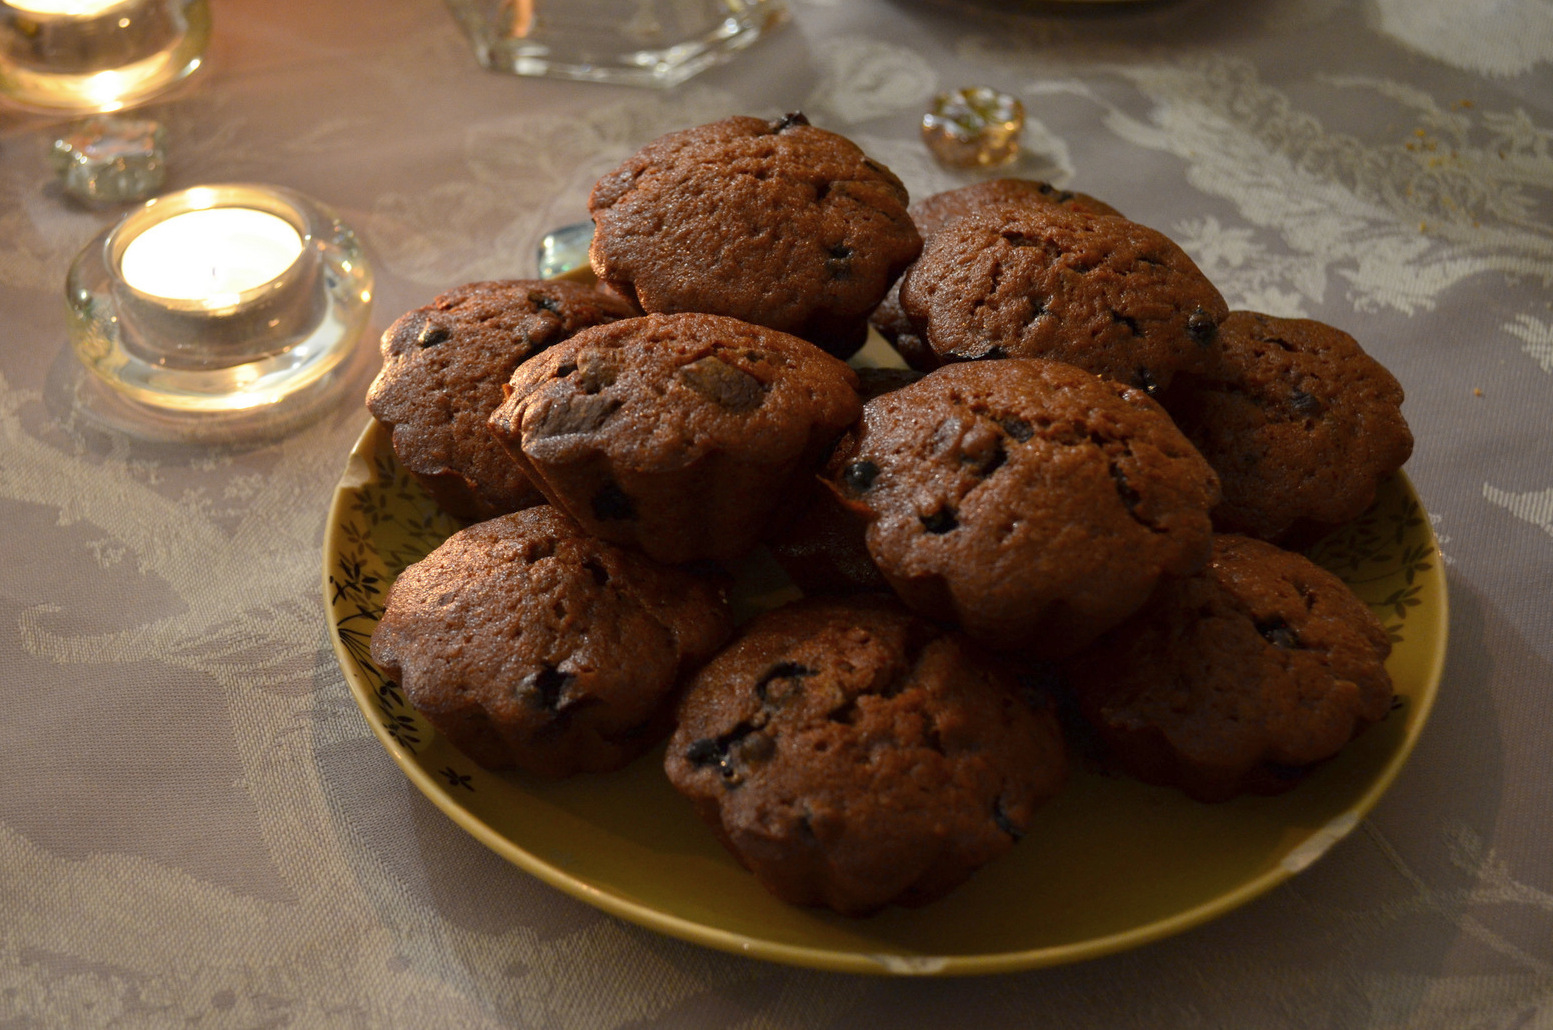 Our hosts keeps an all organic diet, with mostly veggie food. We helped with the cooking, and on a few occasions I made yummy vegan chocolate muffins like these.